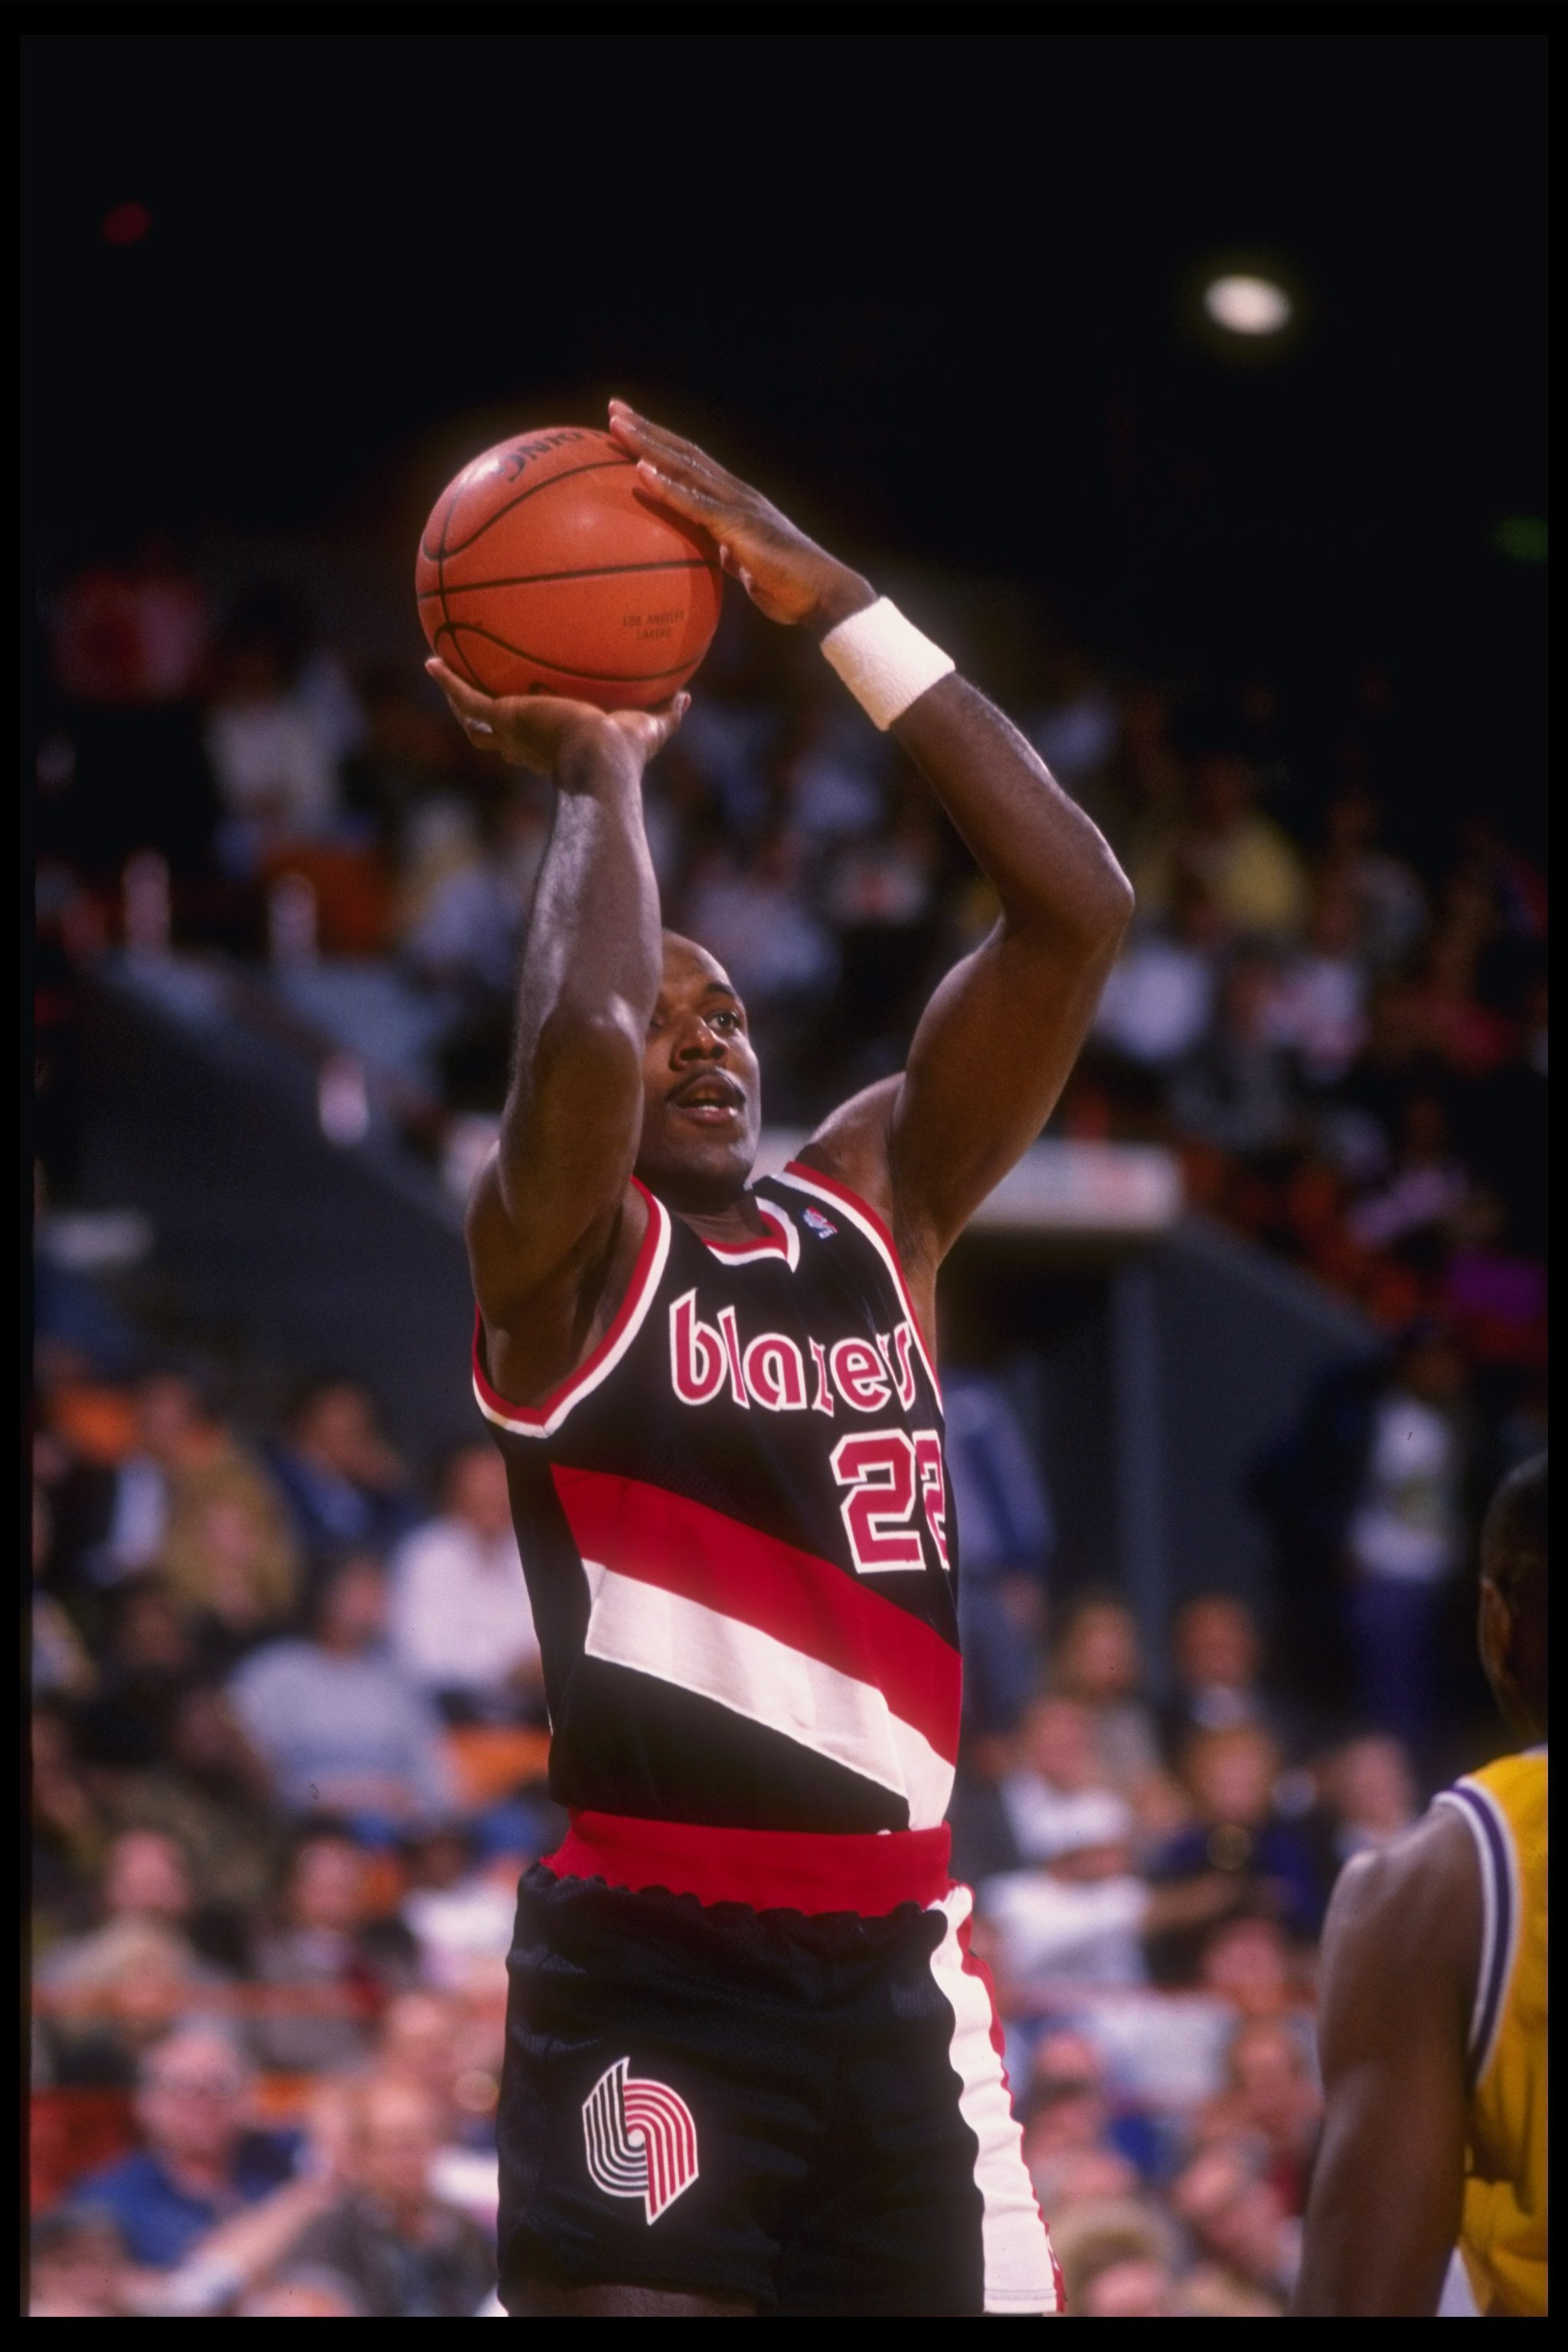 Guard Clyde Drexler of the Portland Trail Blazers shoots the ball during a game against the Los Angeles Lakers at the Rose Garden in Portland, Oregon.